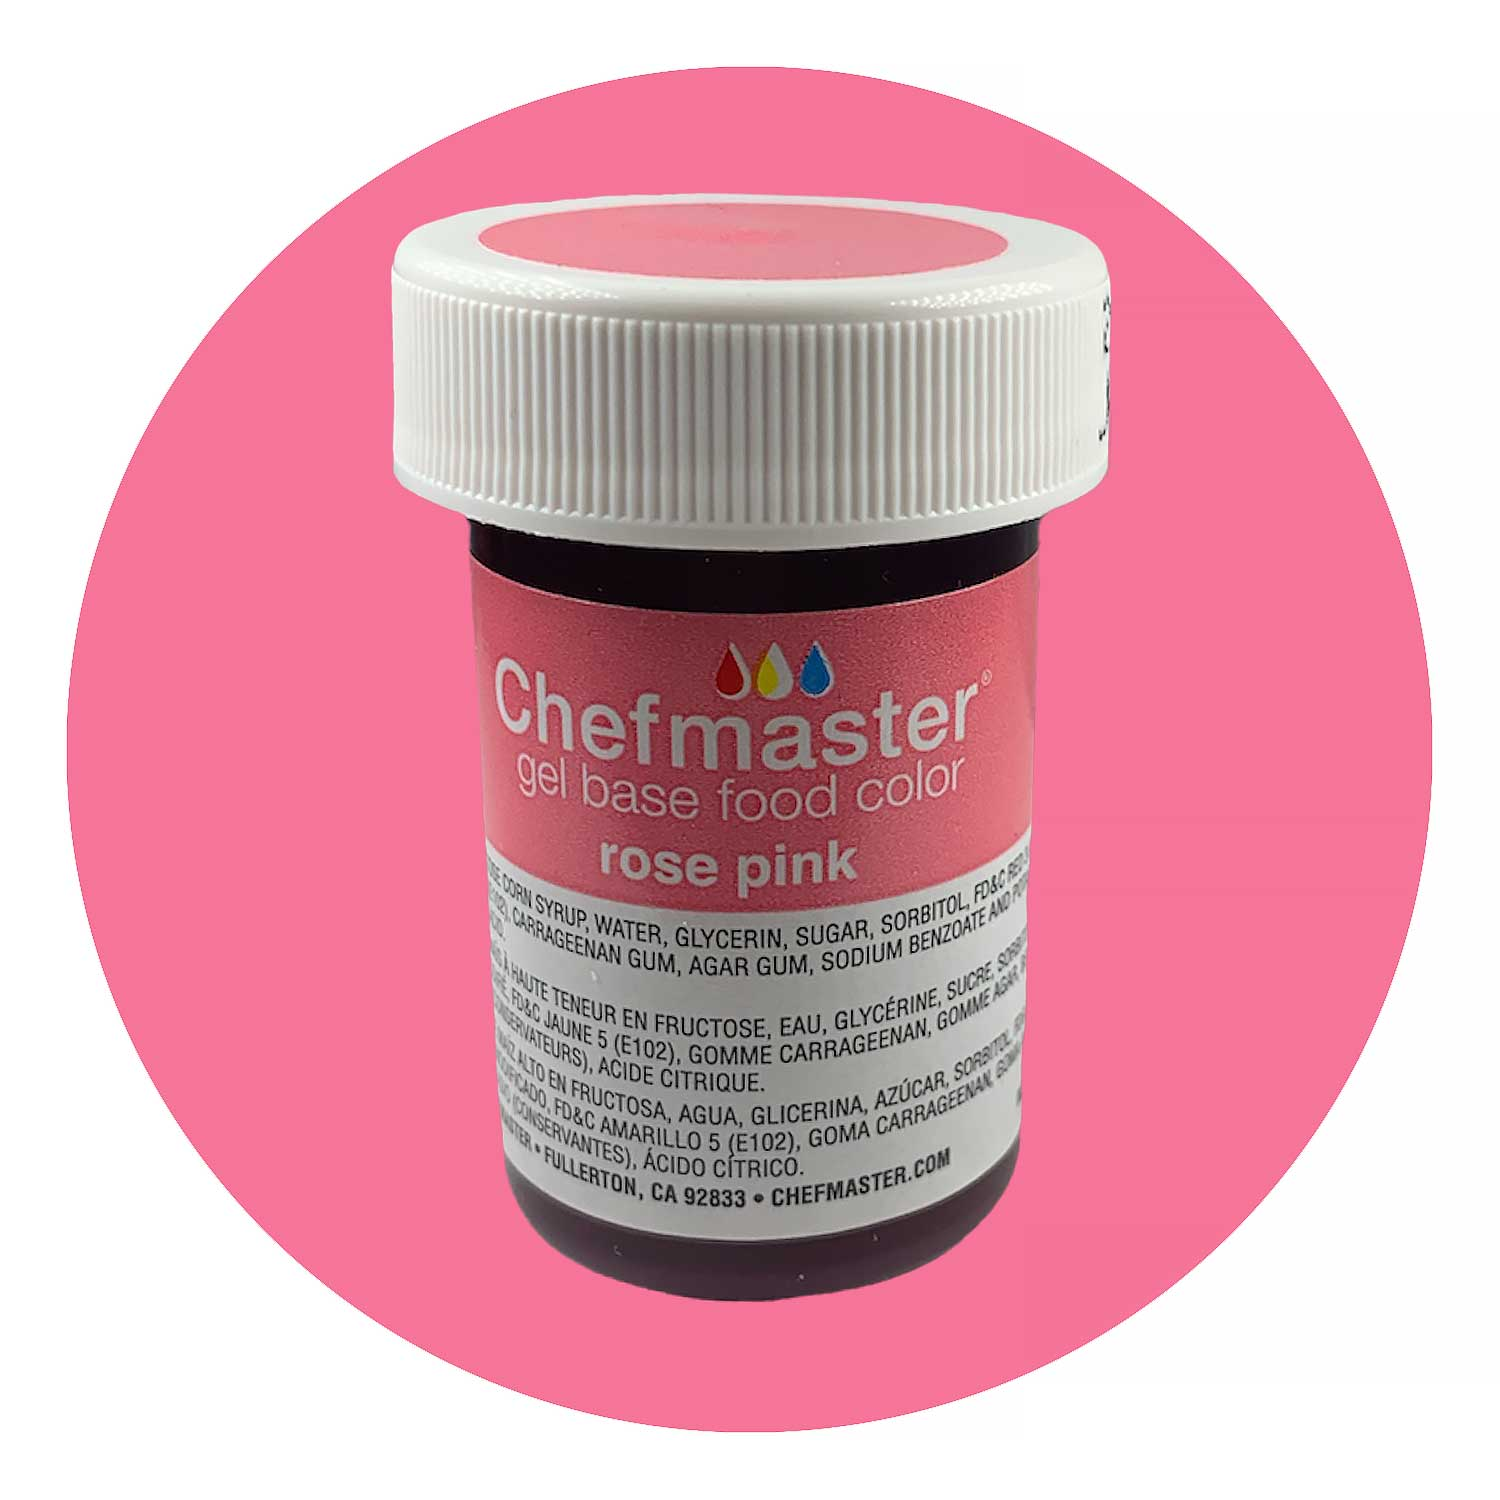 Pink Rose Chefmaster Food Color Gel (Old Item # 41-2377)